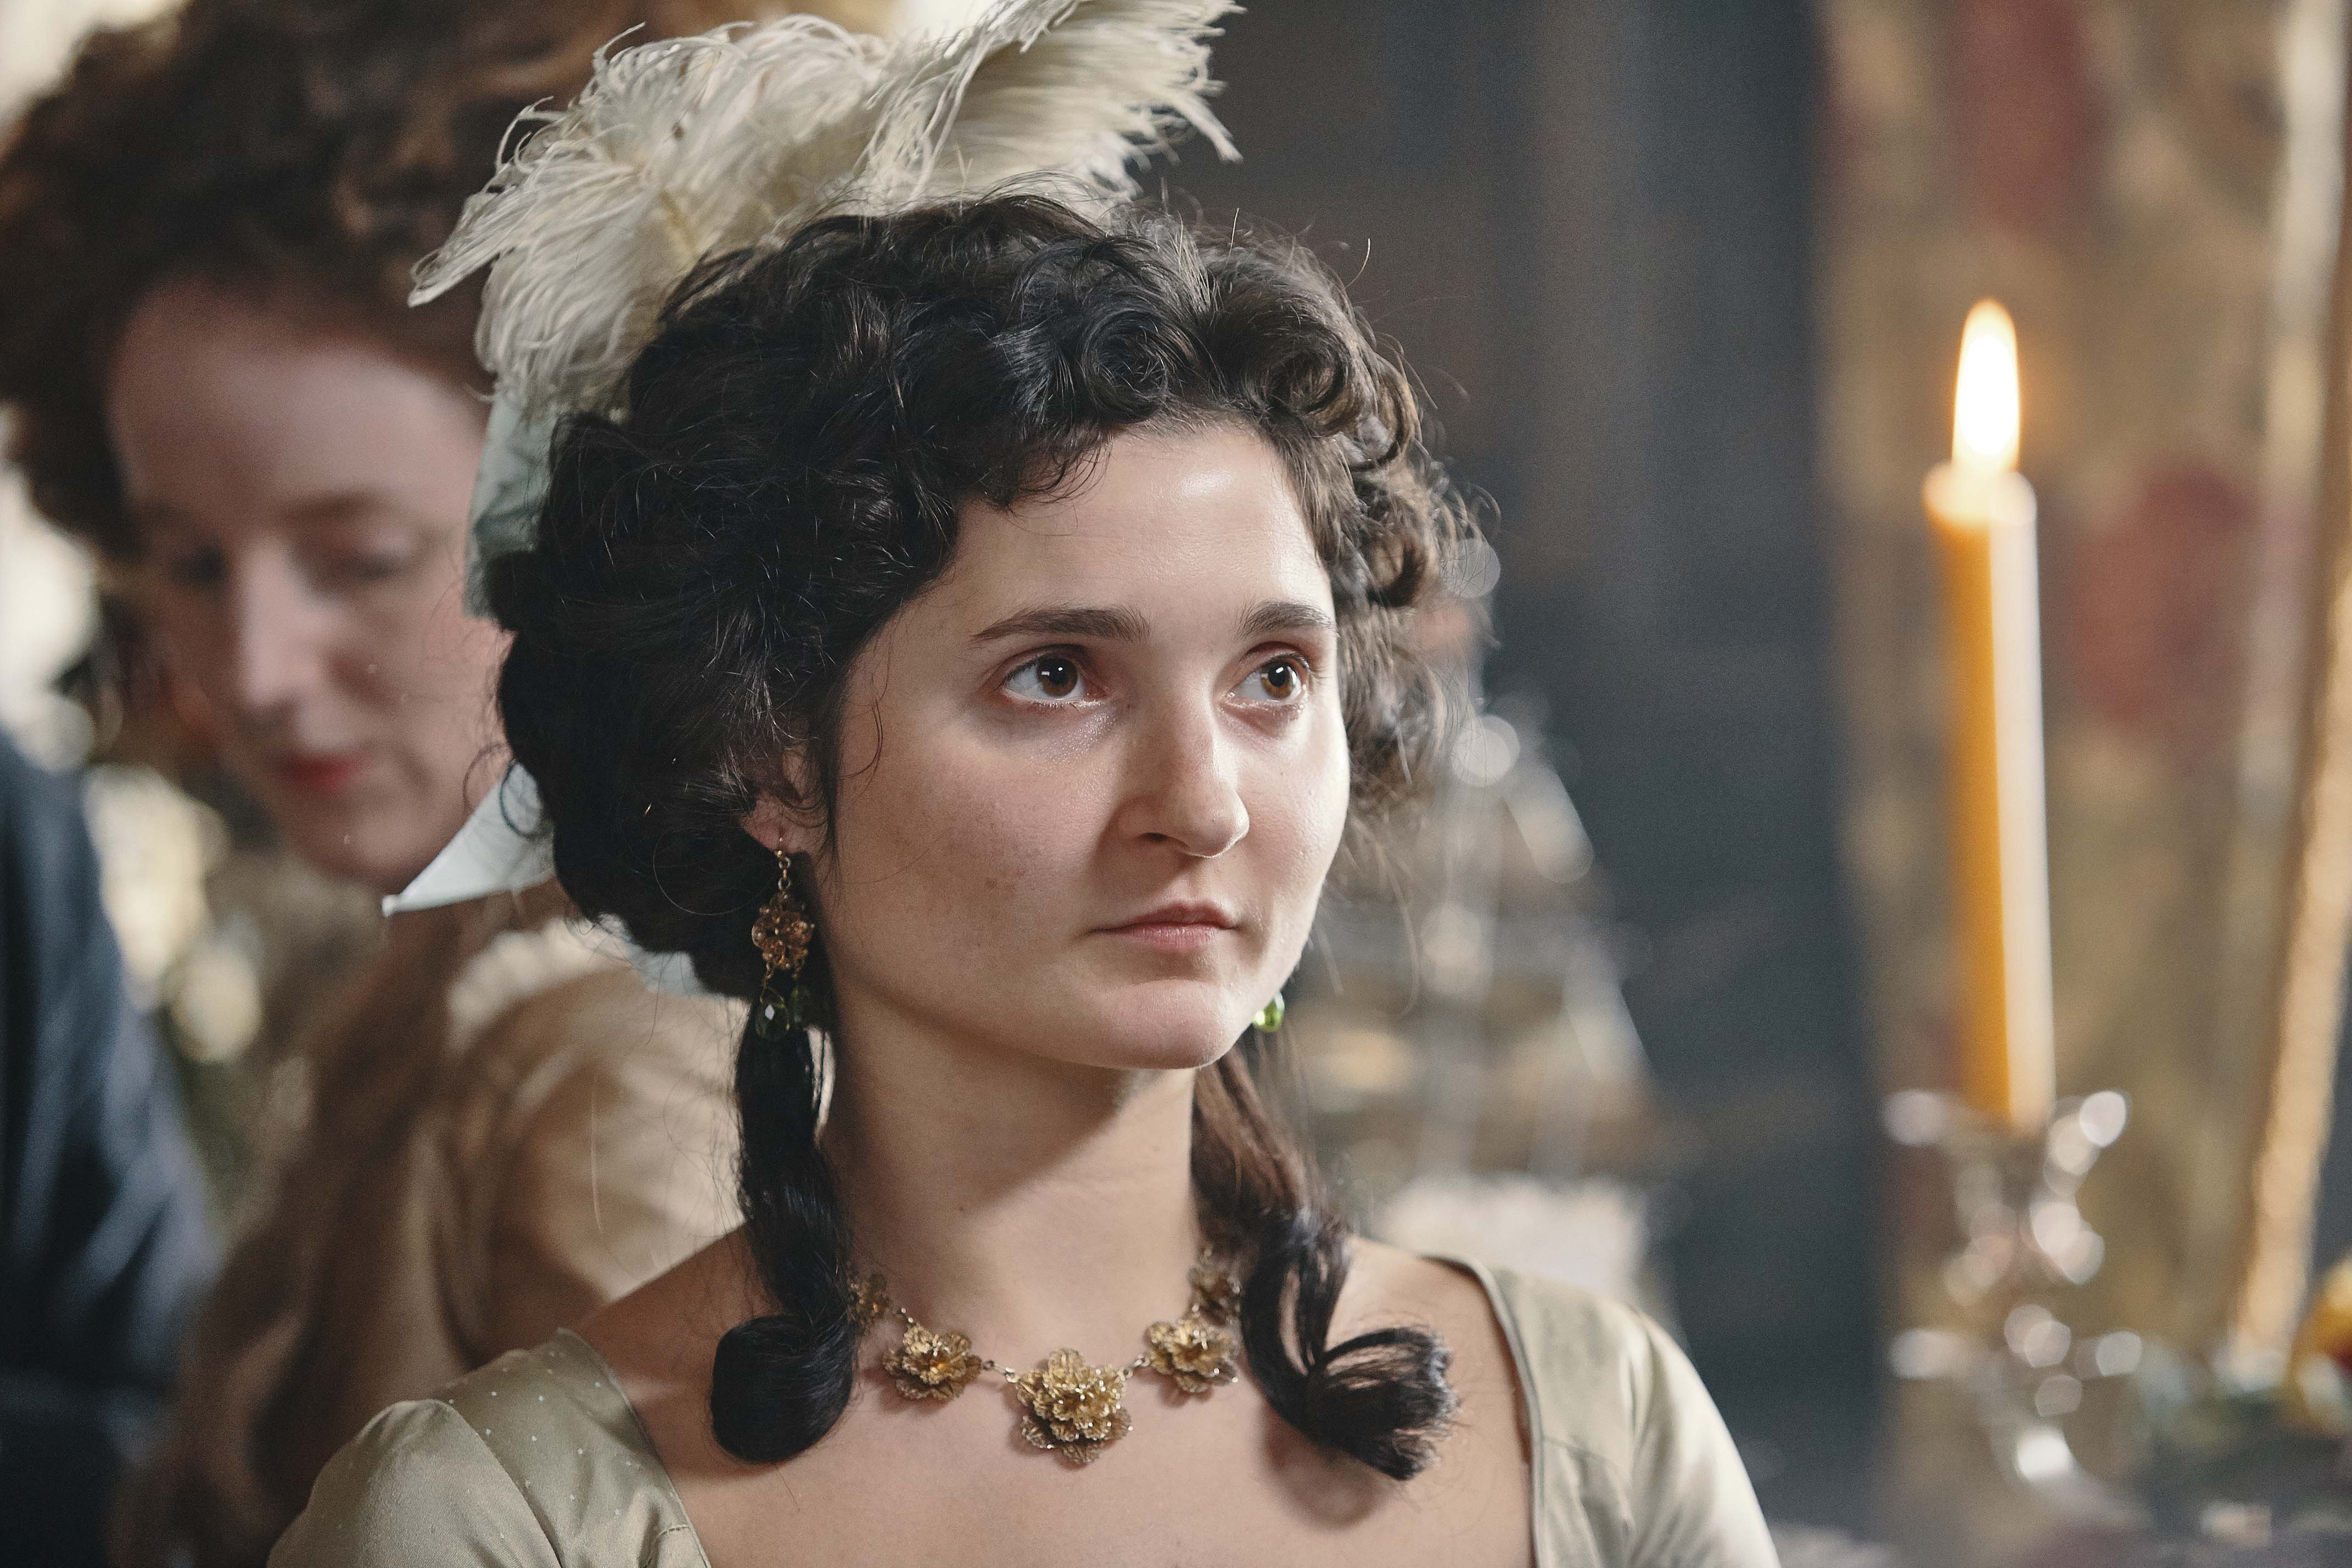 WARNING: Embargoed for publication until 00:00:01 on 19/06/2018 - Programme Name: Poldark - Series 4 - TX: n/a - Episode: Poldark S4 - EP3 (No. 3) - Picture Shows: ***EMBARGOED TILL 19TH JUNE 2018*** Verity Blamey (RUBY BENTALL) - (C) Mammoth Screen - Photographer: Robert Viglasky